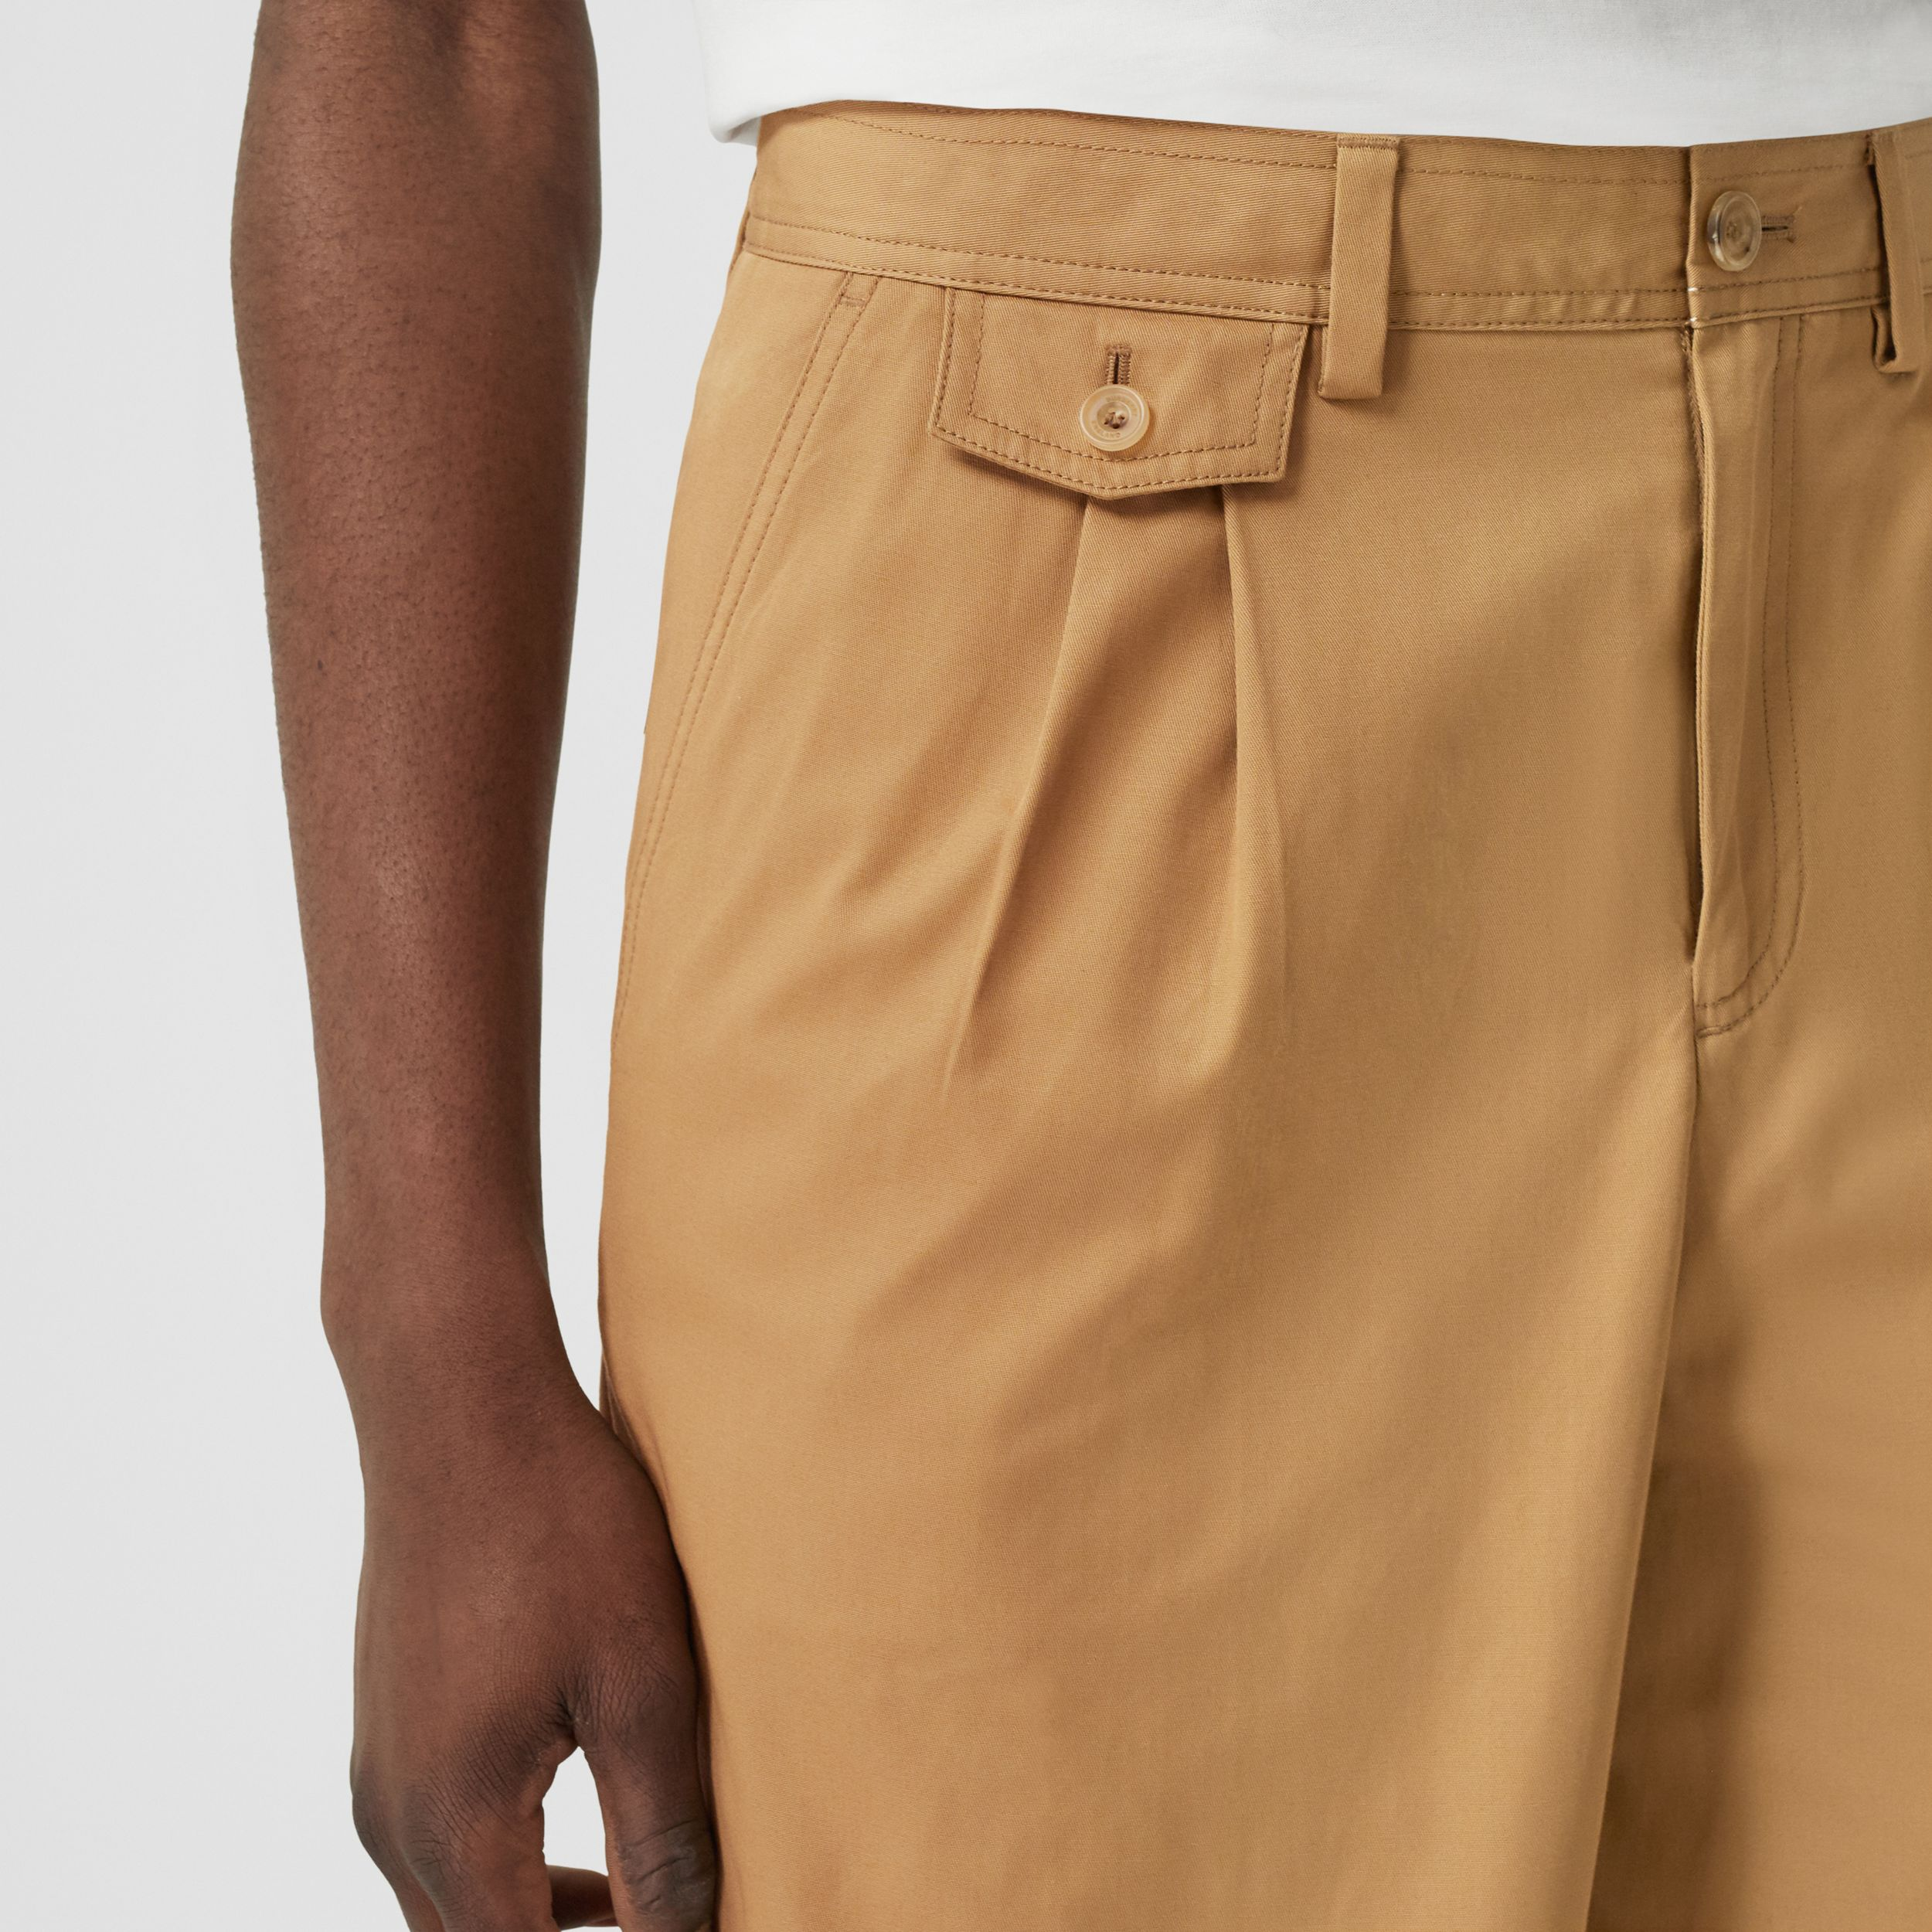 Icon Stripe Detail Cotton Twill Tailored Shorts in Camel - Men | Burberry - 2